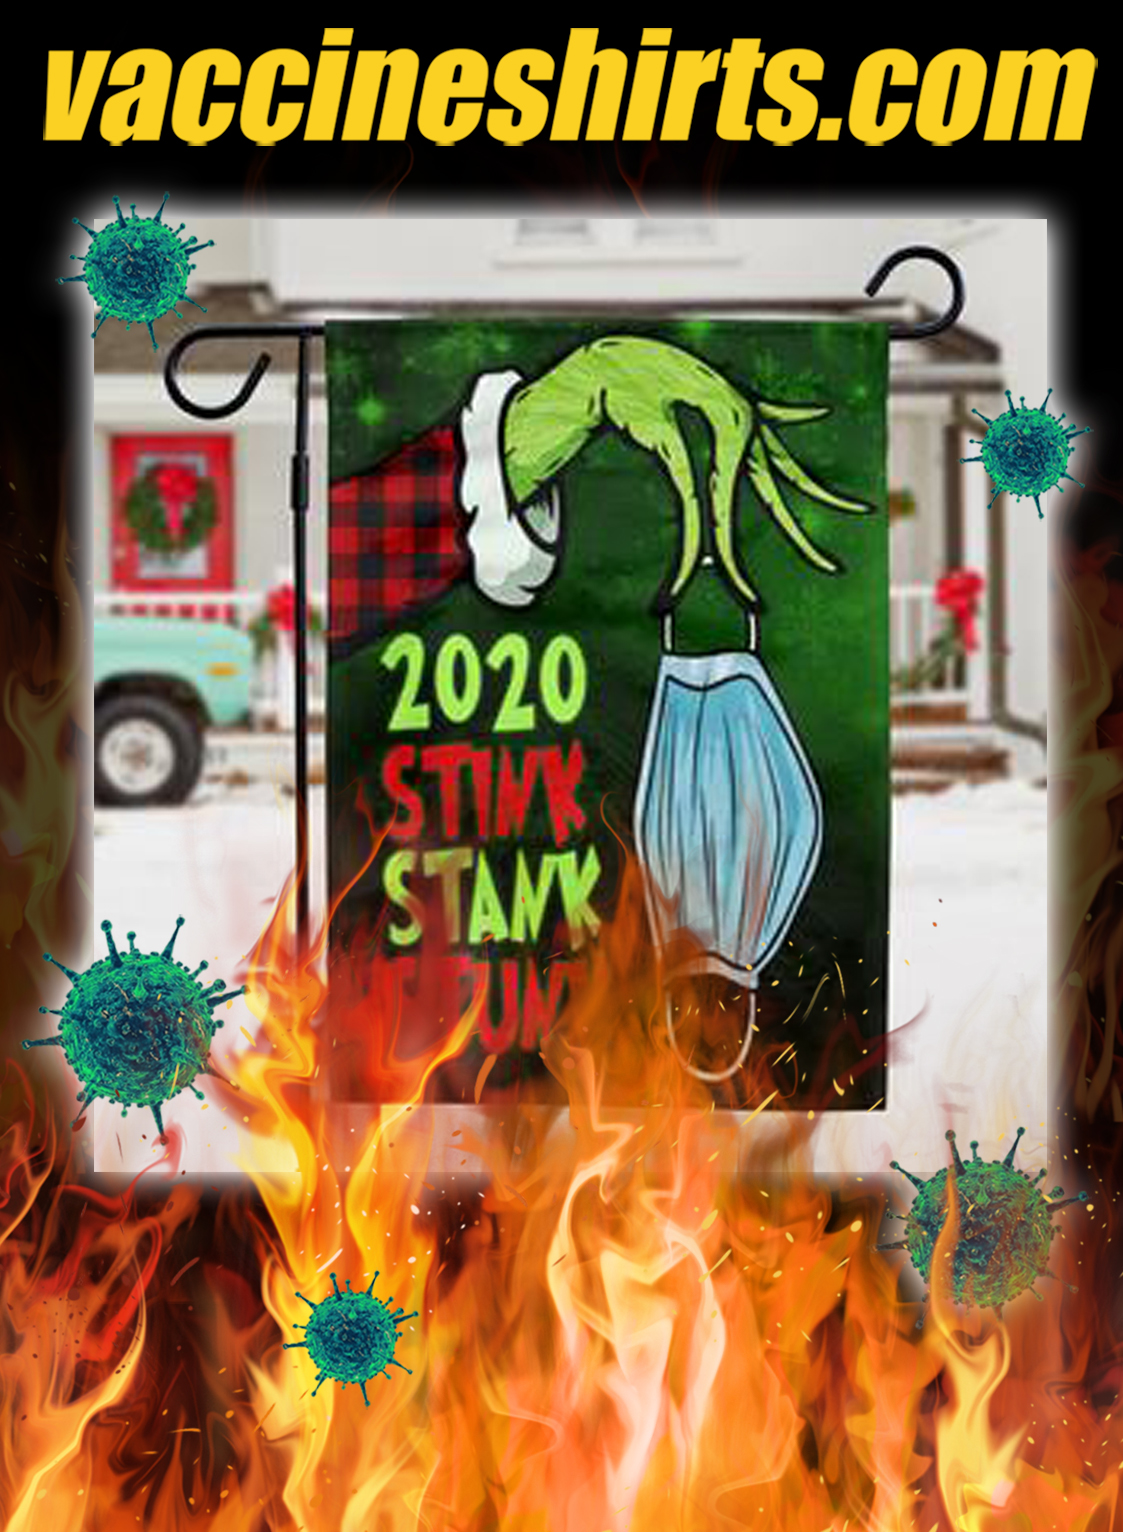 Grinch 2020 stink stank stunk flag- pic 1